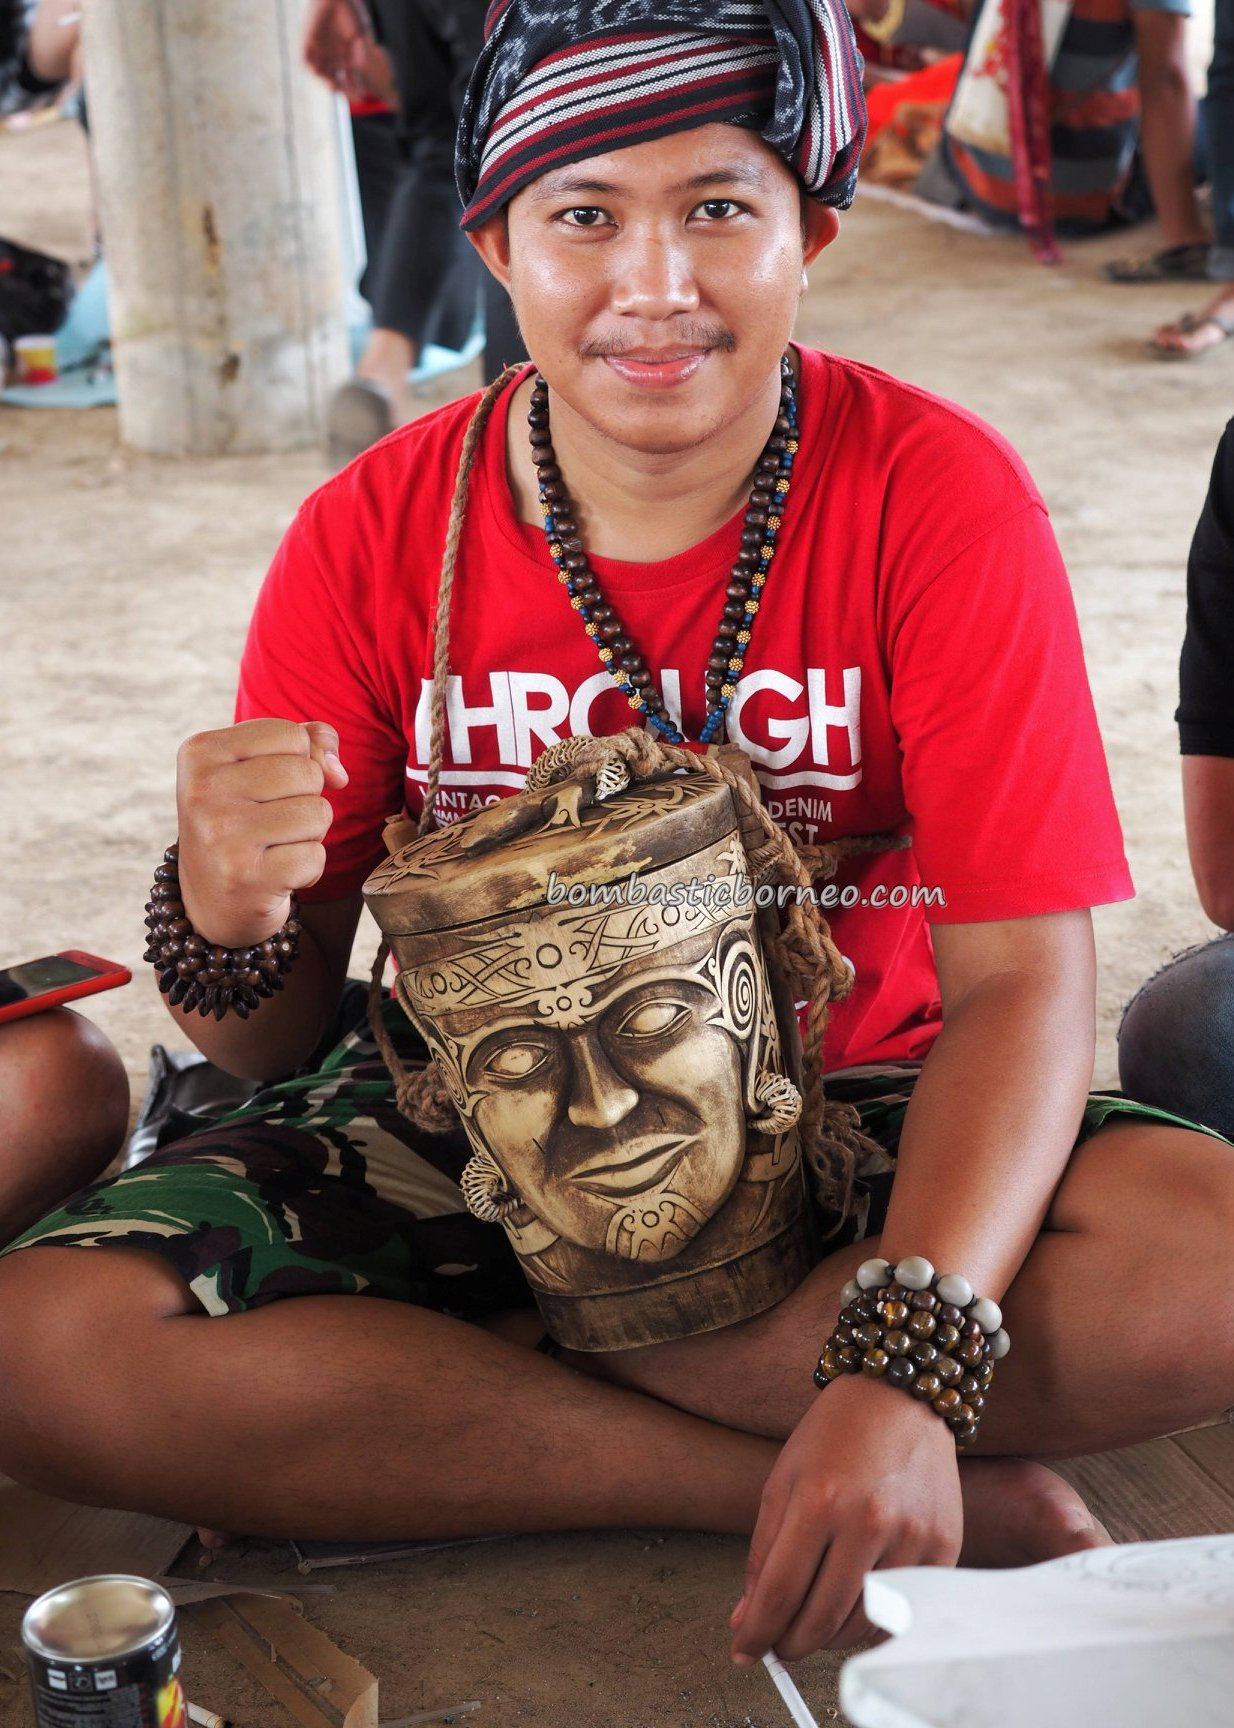 Gawai Dayak Sanggau, paddy harvest festival, traditional, backpackers, culture, Indonesia, etnis, native, tribal, wisata budaya, Tourism, travel guide, trans border, 印尼西加里曼丹, 婆罗洲原住民部落